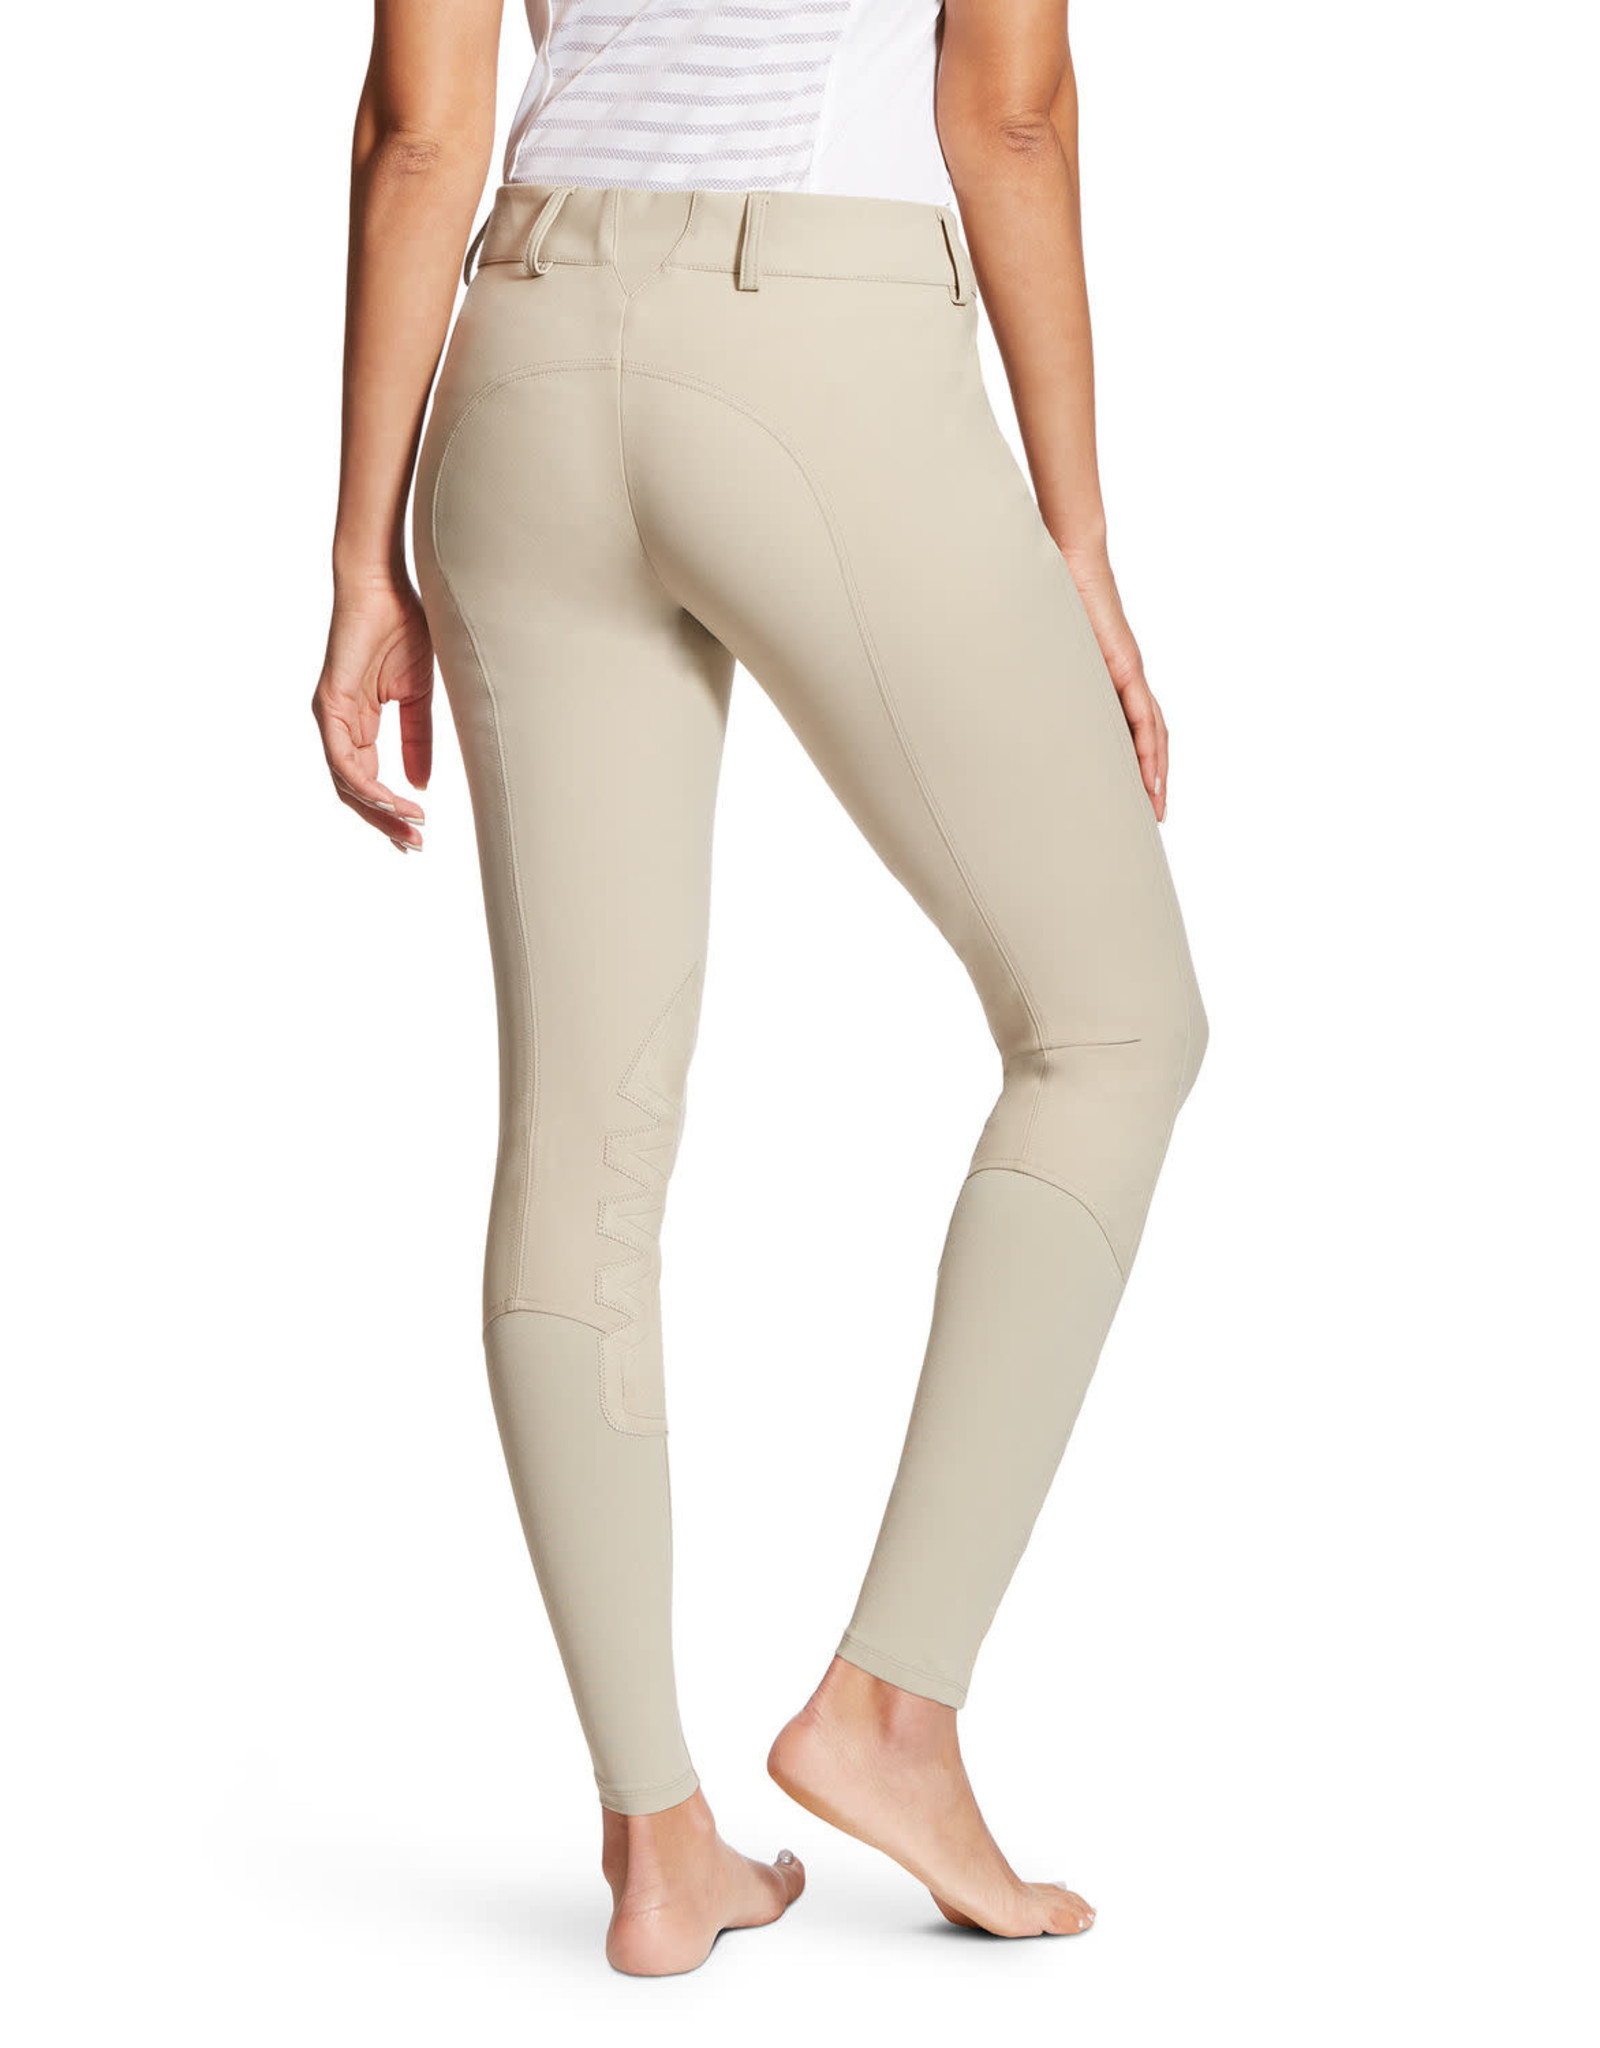 Ariat Ladies' Olympia Knee Patch Breeches